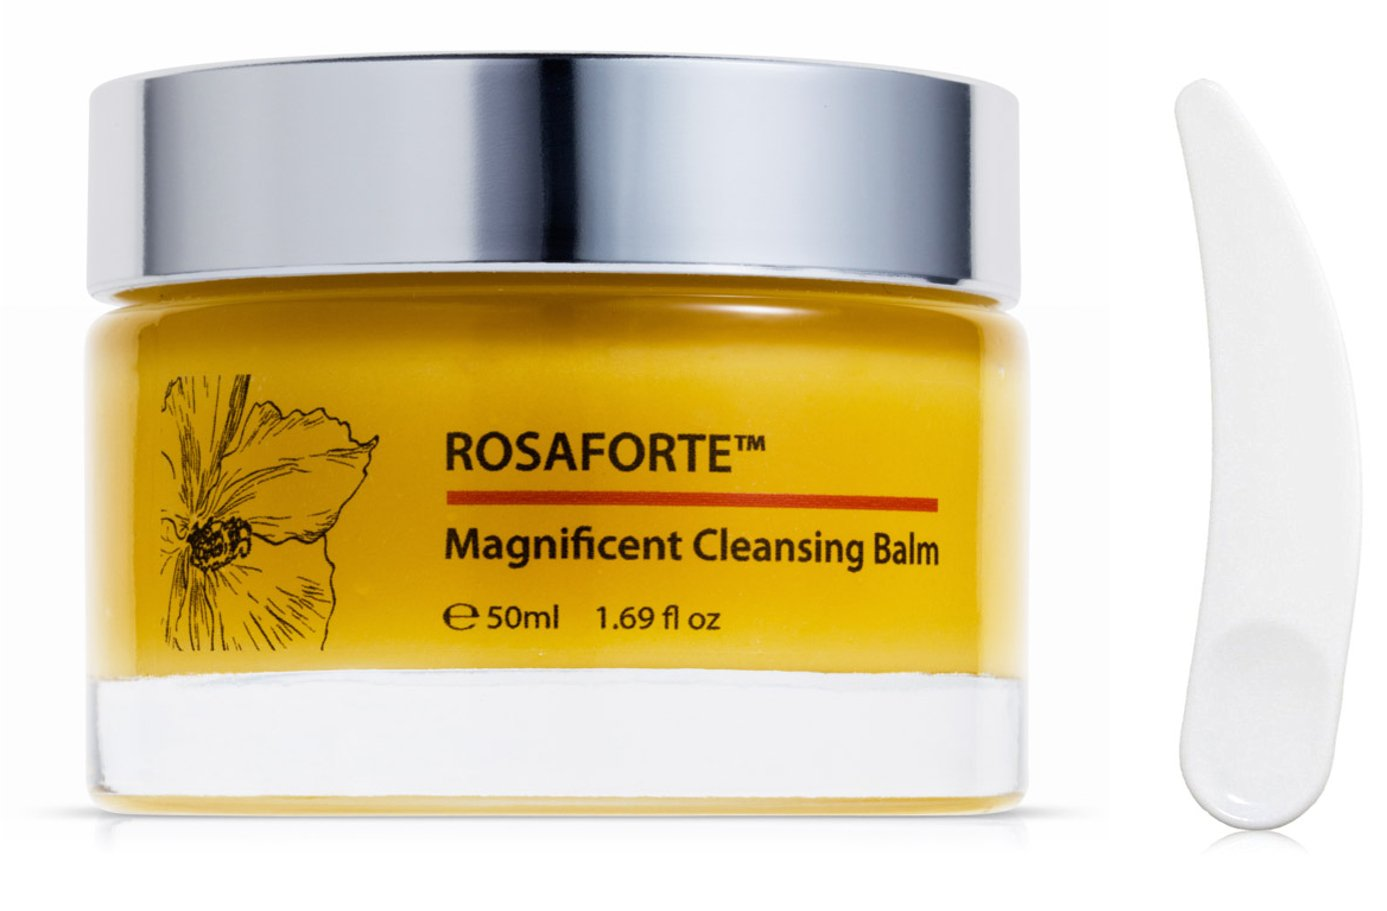 Green Keratin ROSAFORTE Magnificent Cleansing Balm || Rose, Rosehip & Vitamin E || Face & Eye Cleanser for Dry, Mature Skin || 120ml